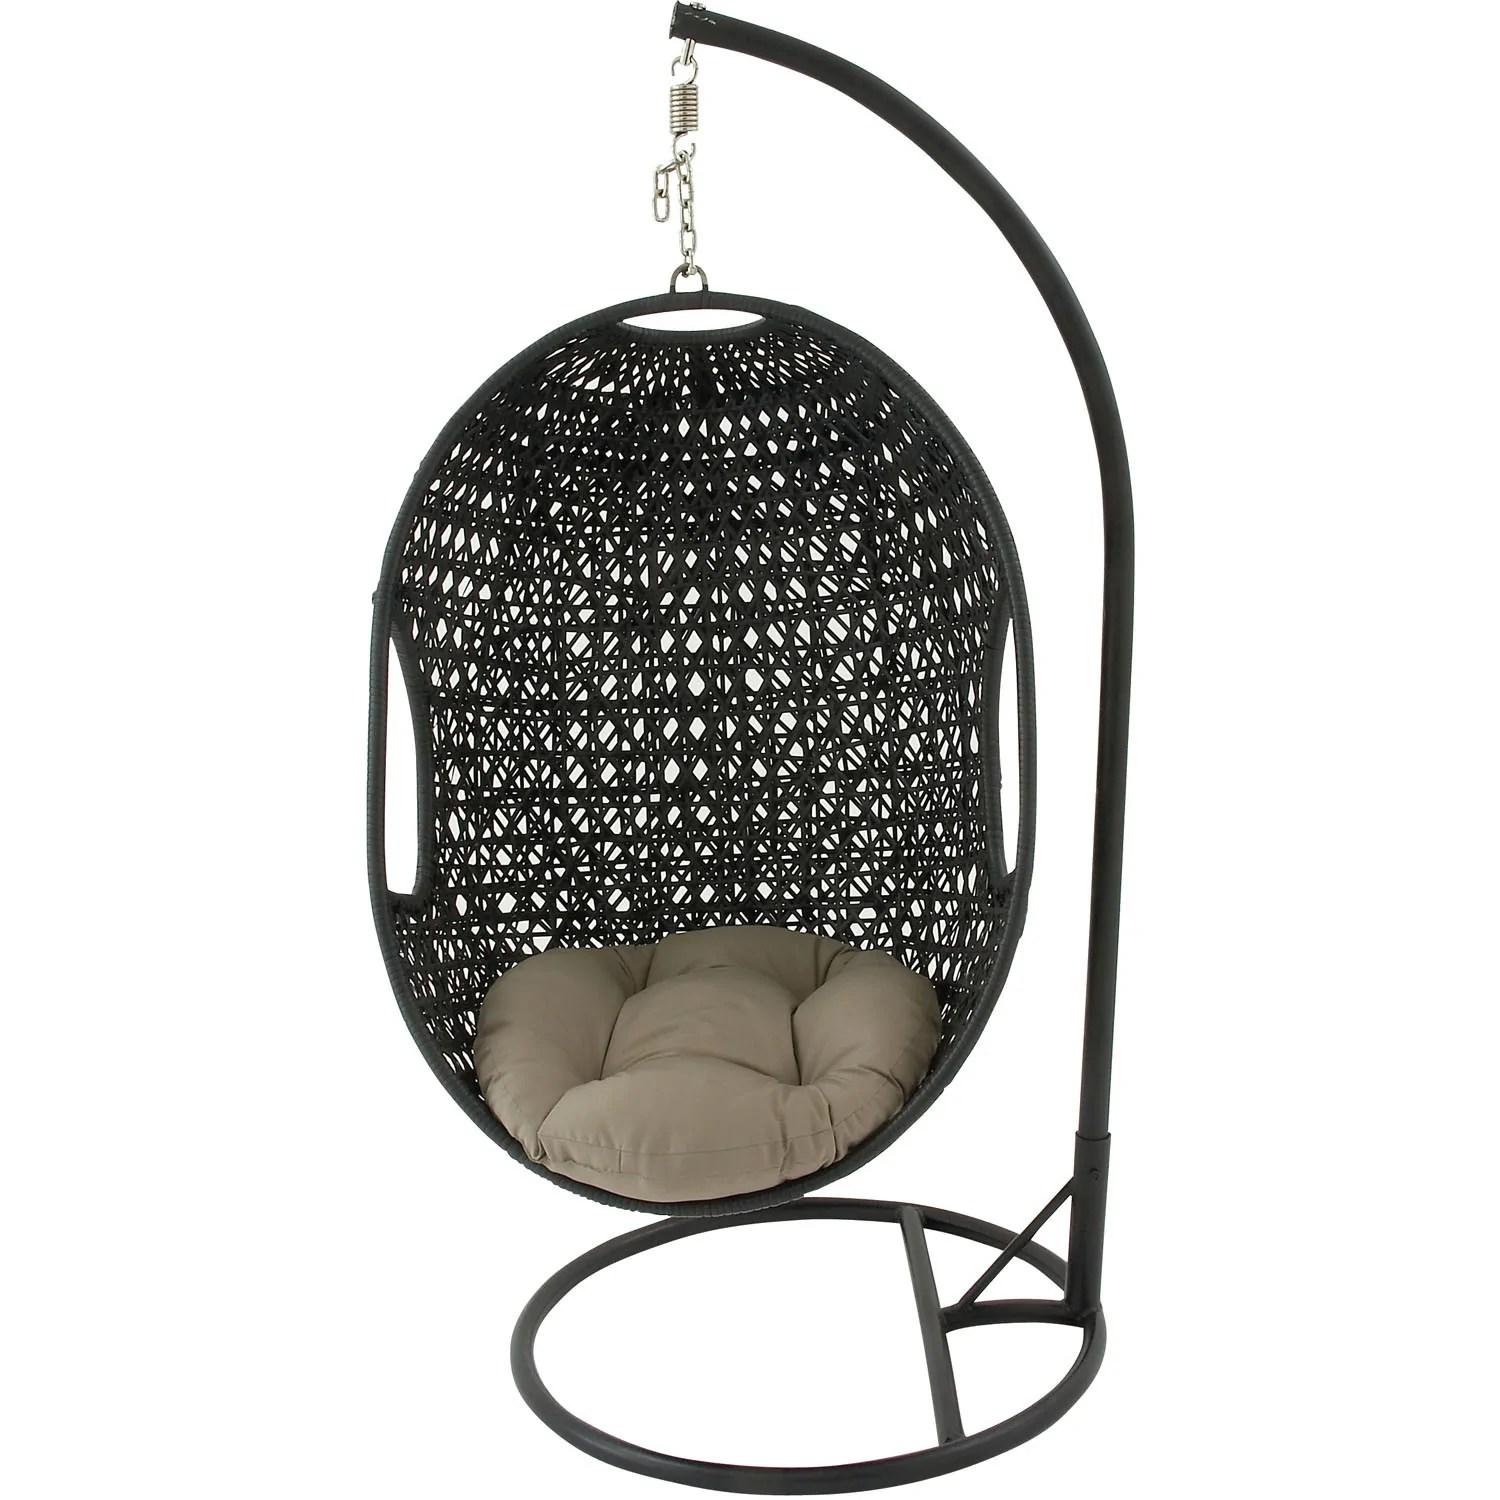 Egg Wicker Chairs Outdoor Hanover Outdoor Wicker Rattan Hanging Egg Chair Swing Egg Swing01